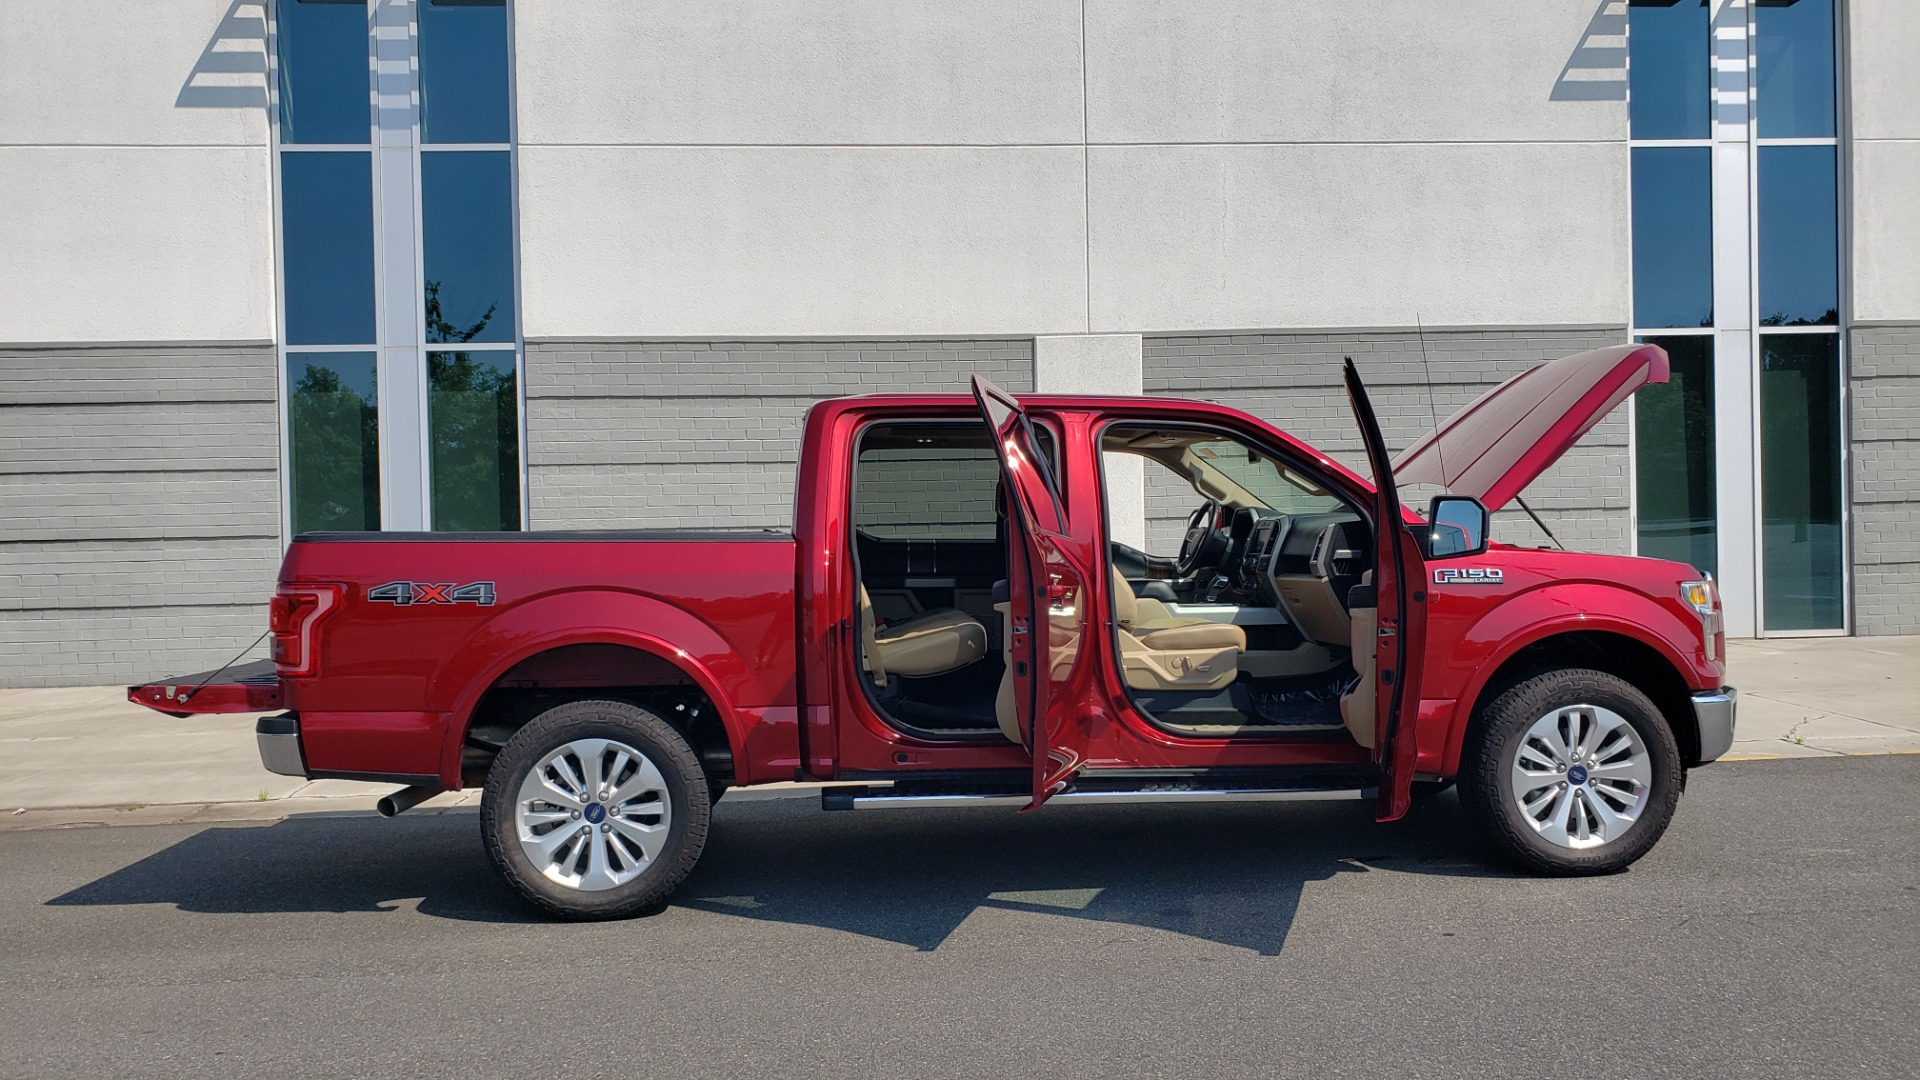 Used 2015 Ford F-150 LARIAT 4X4 SUPERCREW / 5.0L V8 / AUTO / NAV / SUNROOF / REARVIEW for sale $33,995 at Formula Imports in Charlotte NC 28227 14